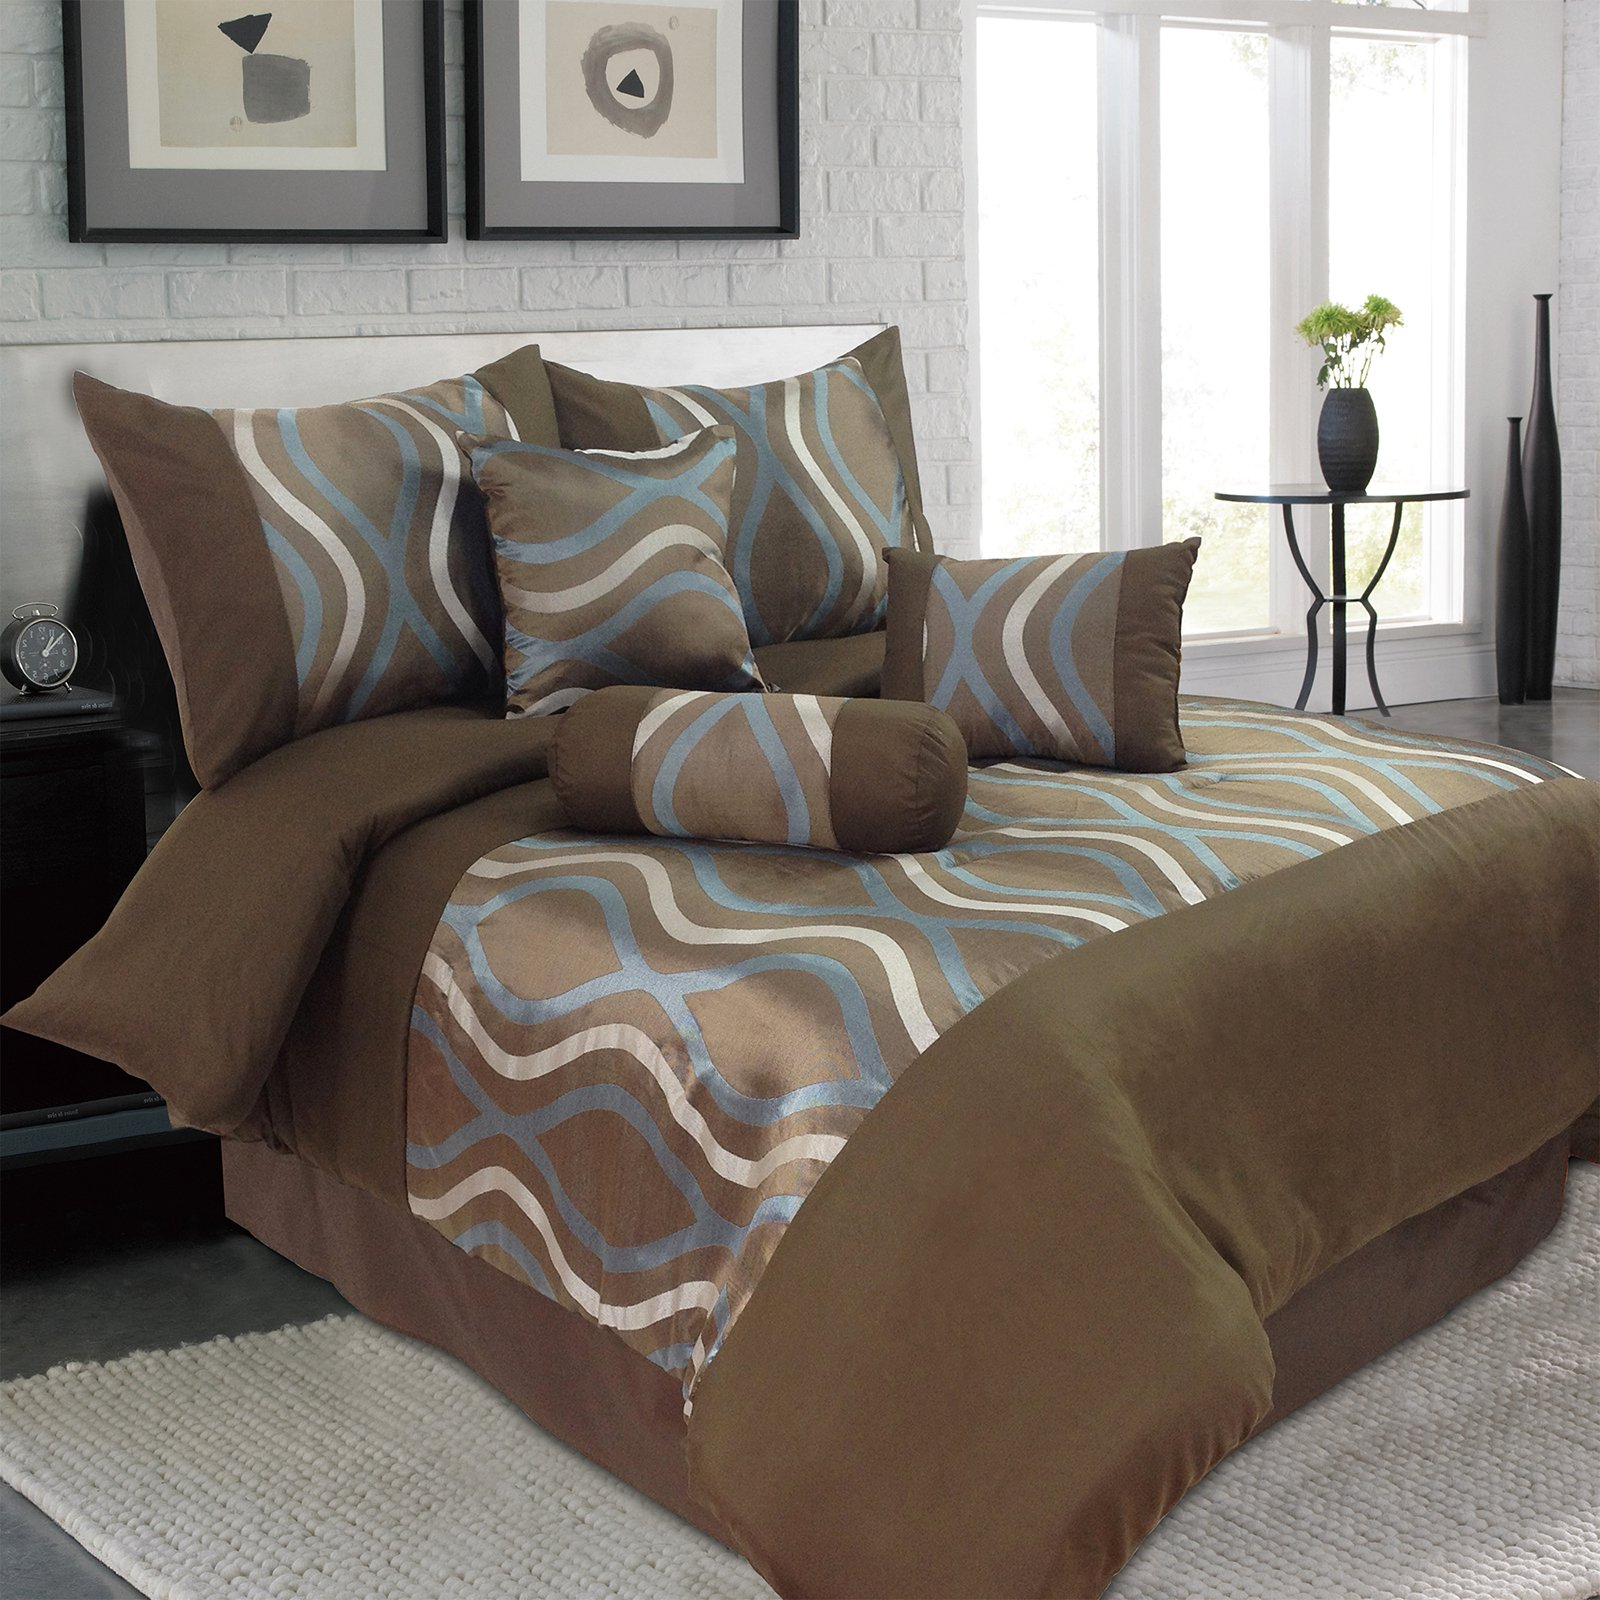 Galina 7 Piece Comforter Set by Lavish Home